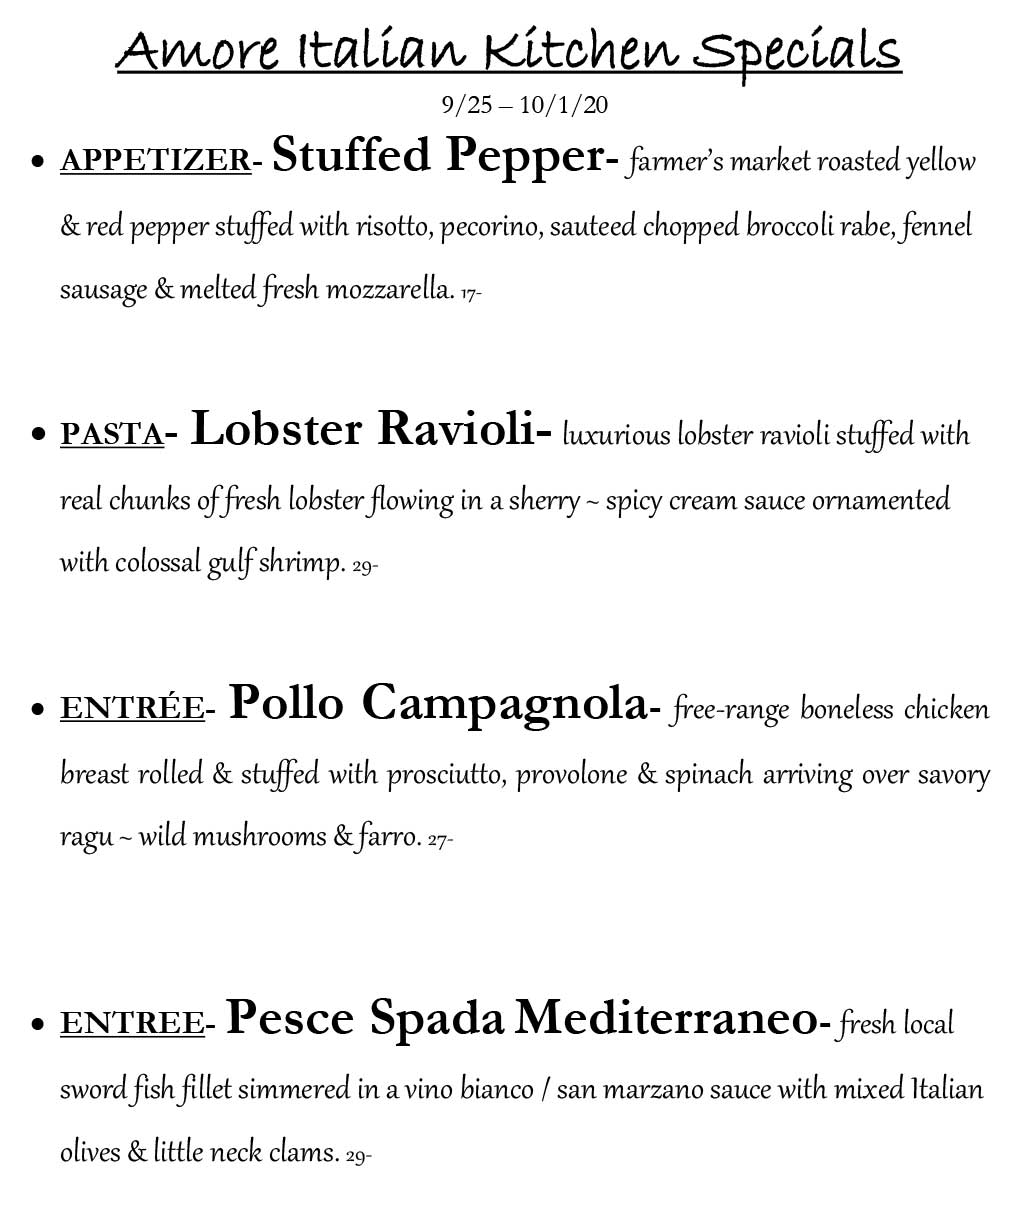 Amore Weekly Specials from 9/25 - 10/1